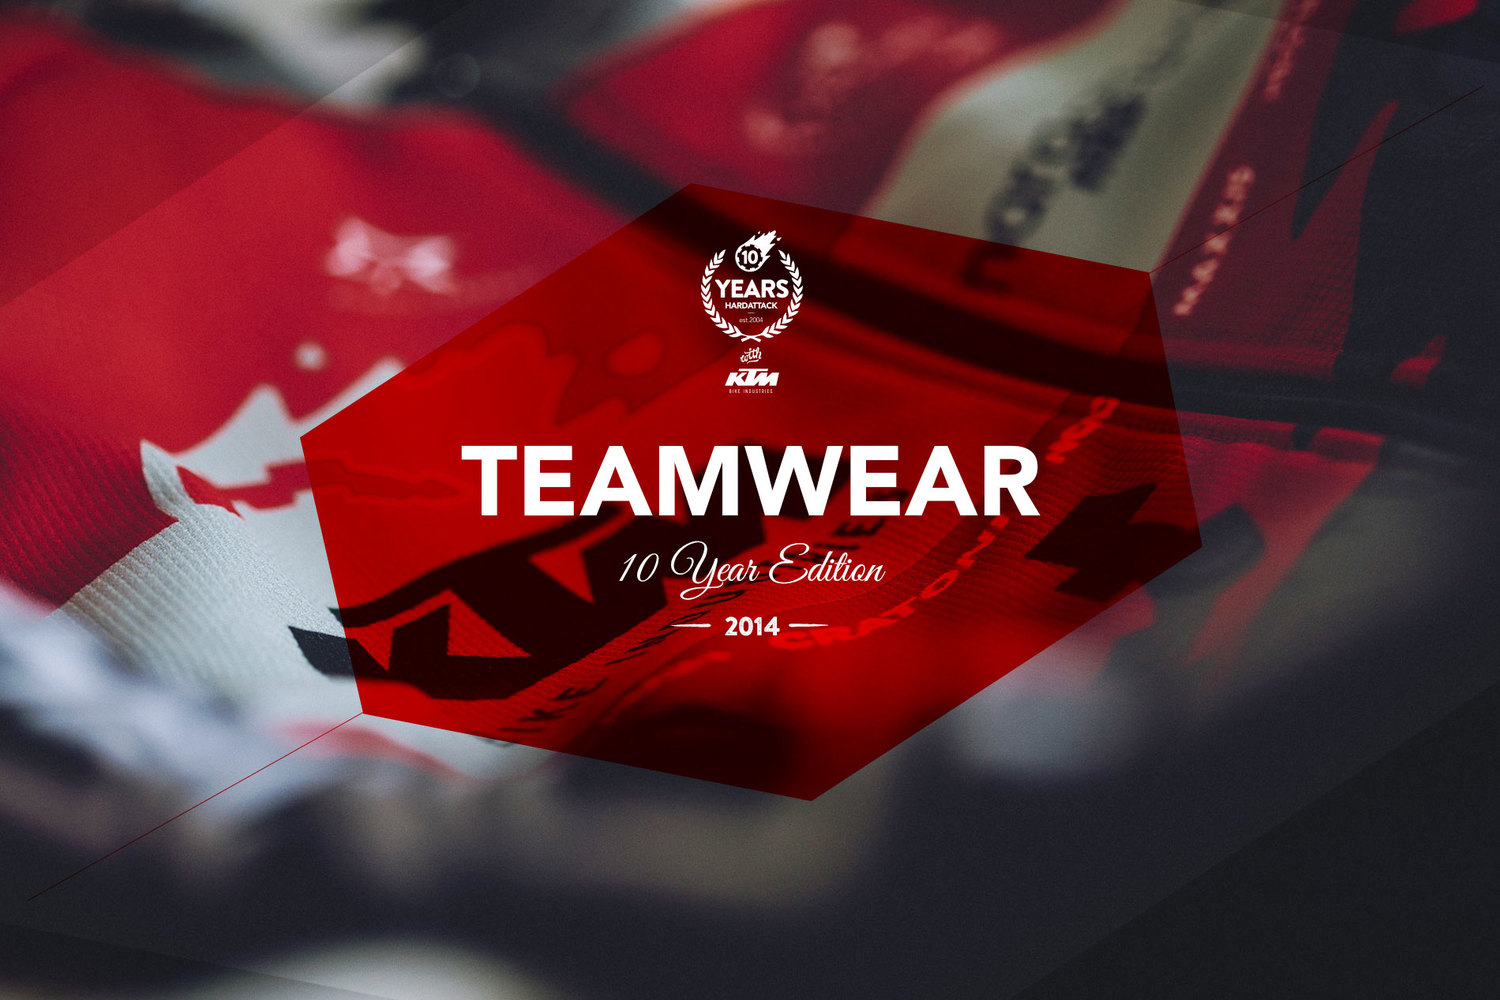 cover_teamwear_new.jpg